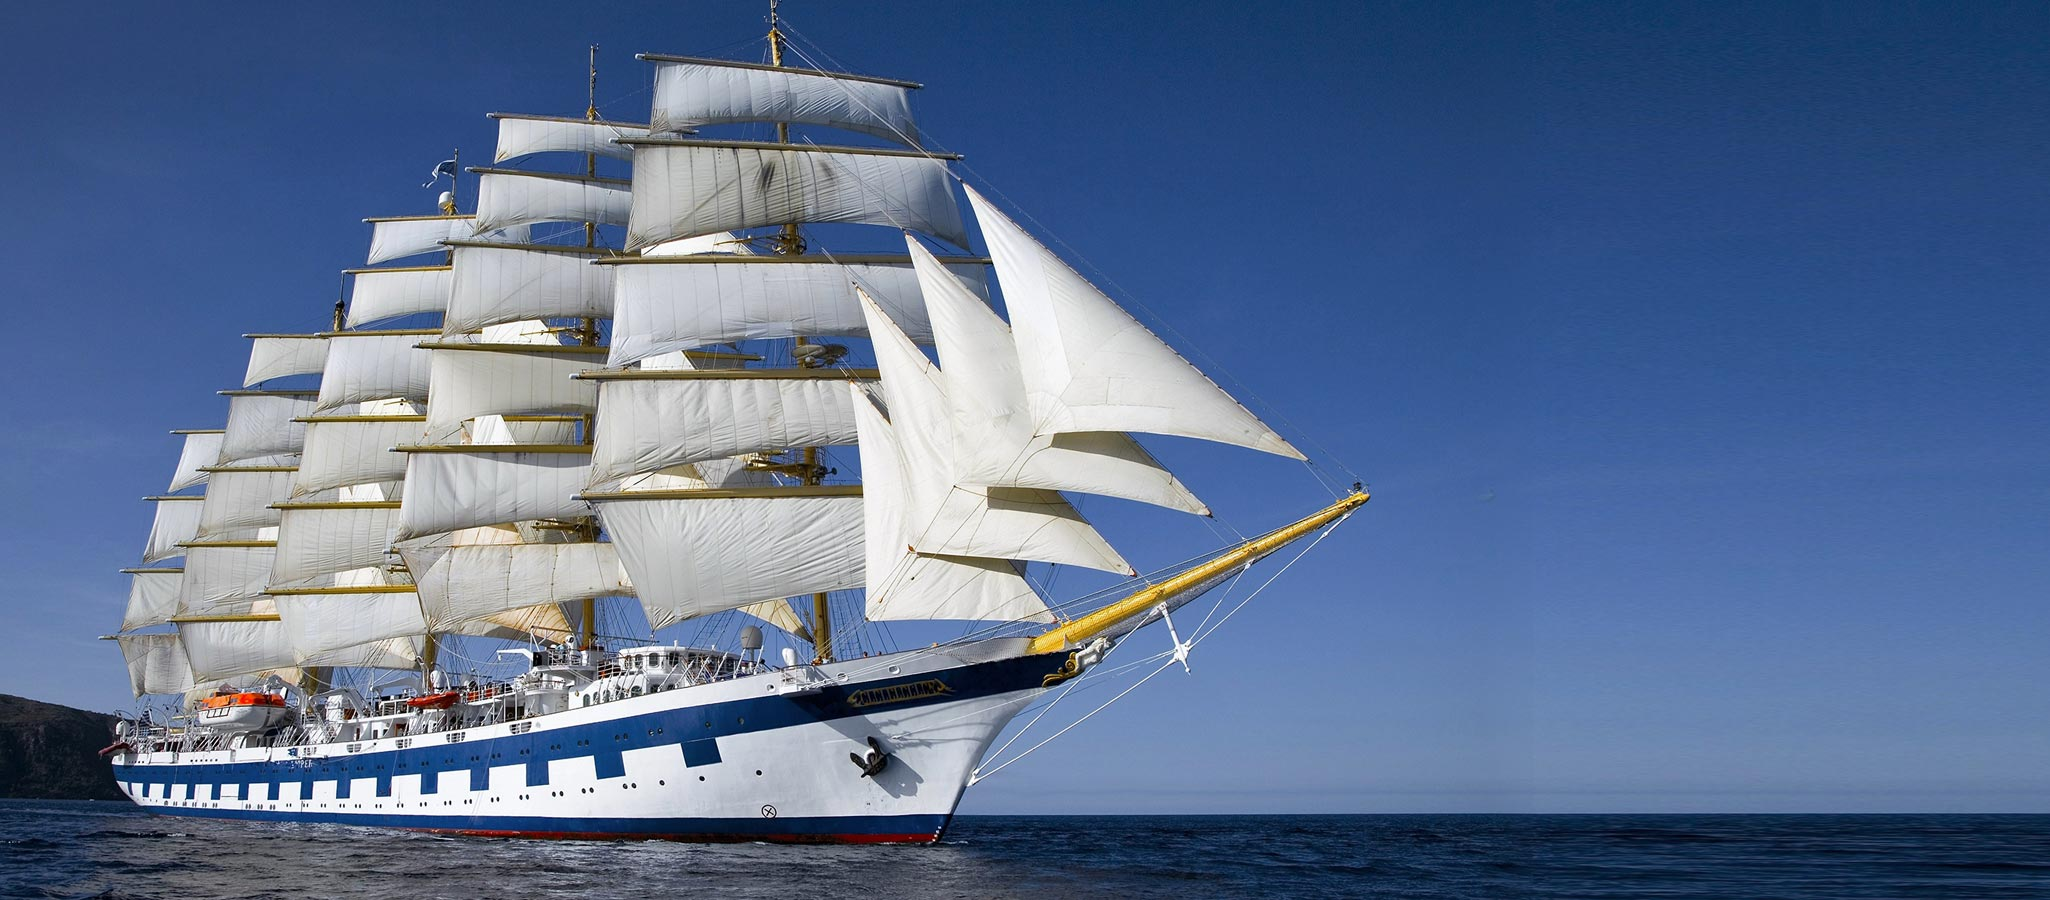 One of the biggest sailing ships in the world – and, with over 5,000 square meters of sail area, one of the most spectacular event locations.